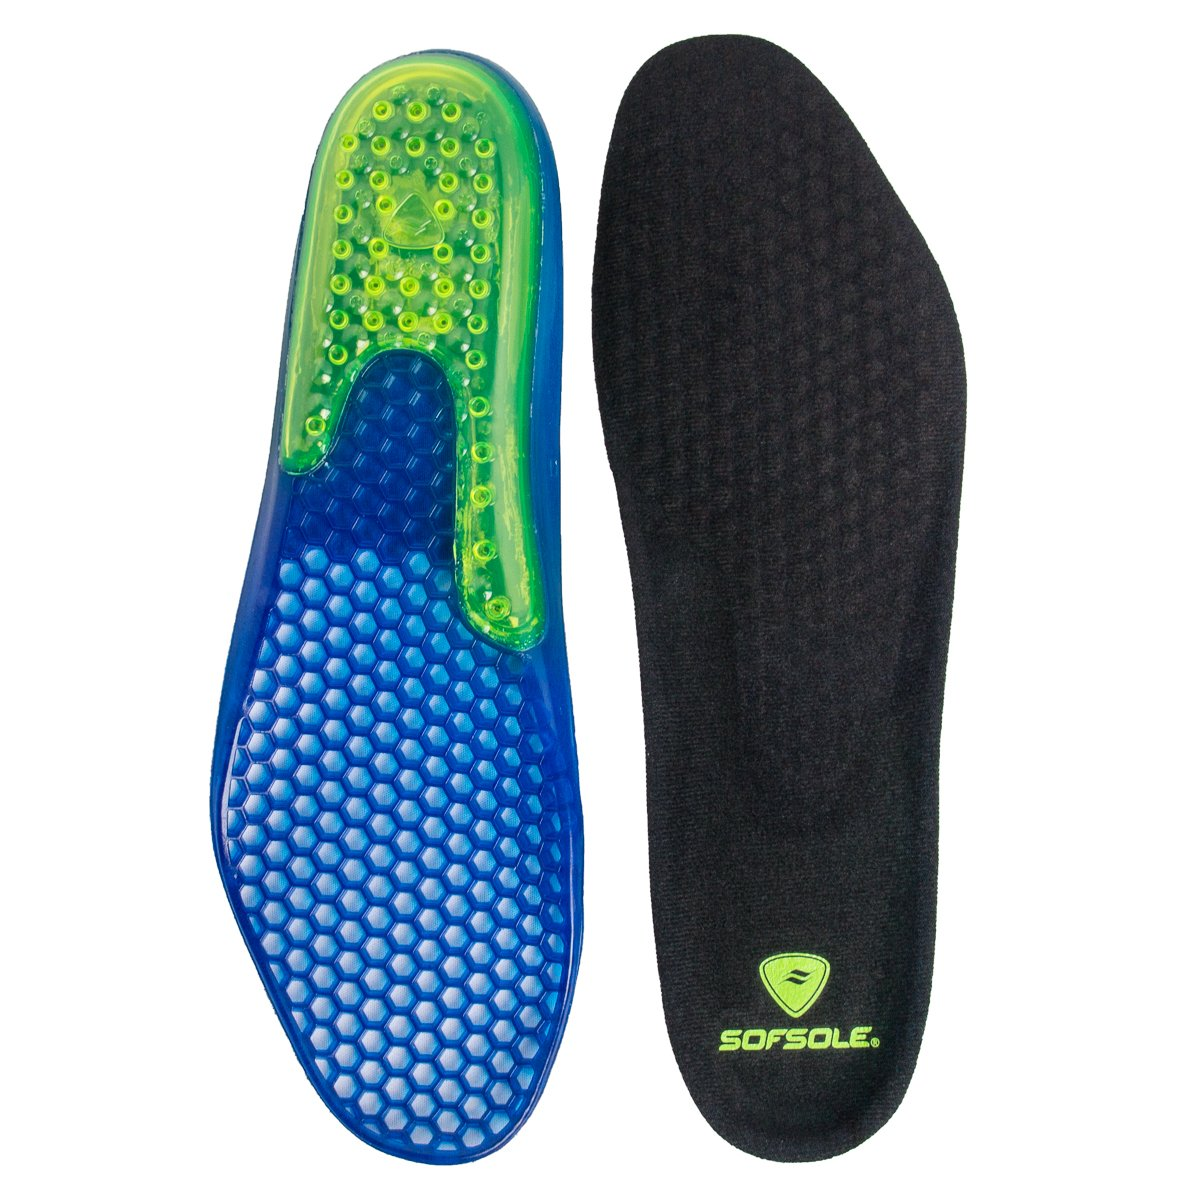 Sof Sole Airr Gel Shoe Inserts Arch Support Shock Absorbing Breathable Walking Running Shoe Insoles by Sof Sole (Image #4)